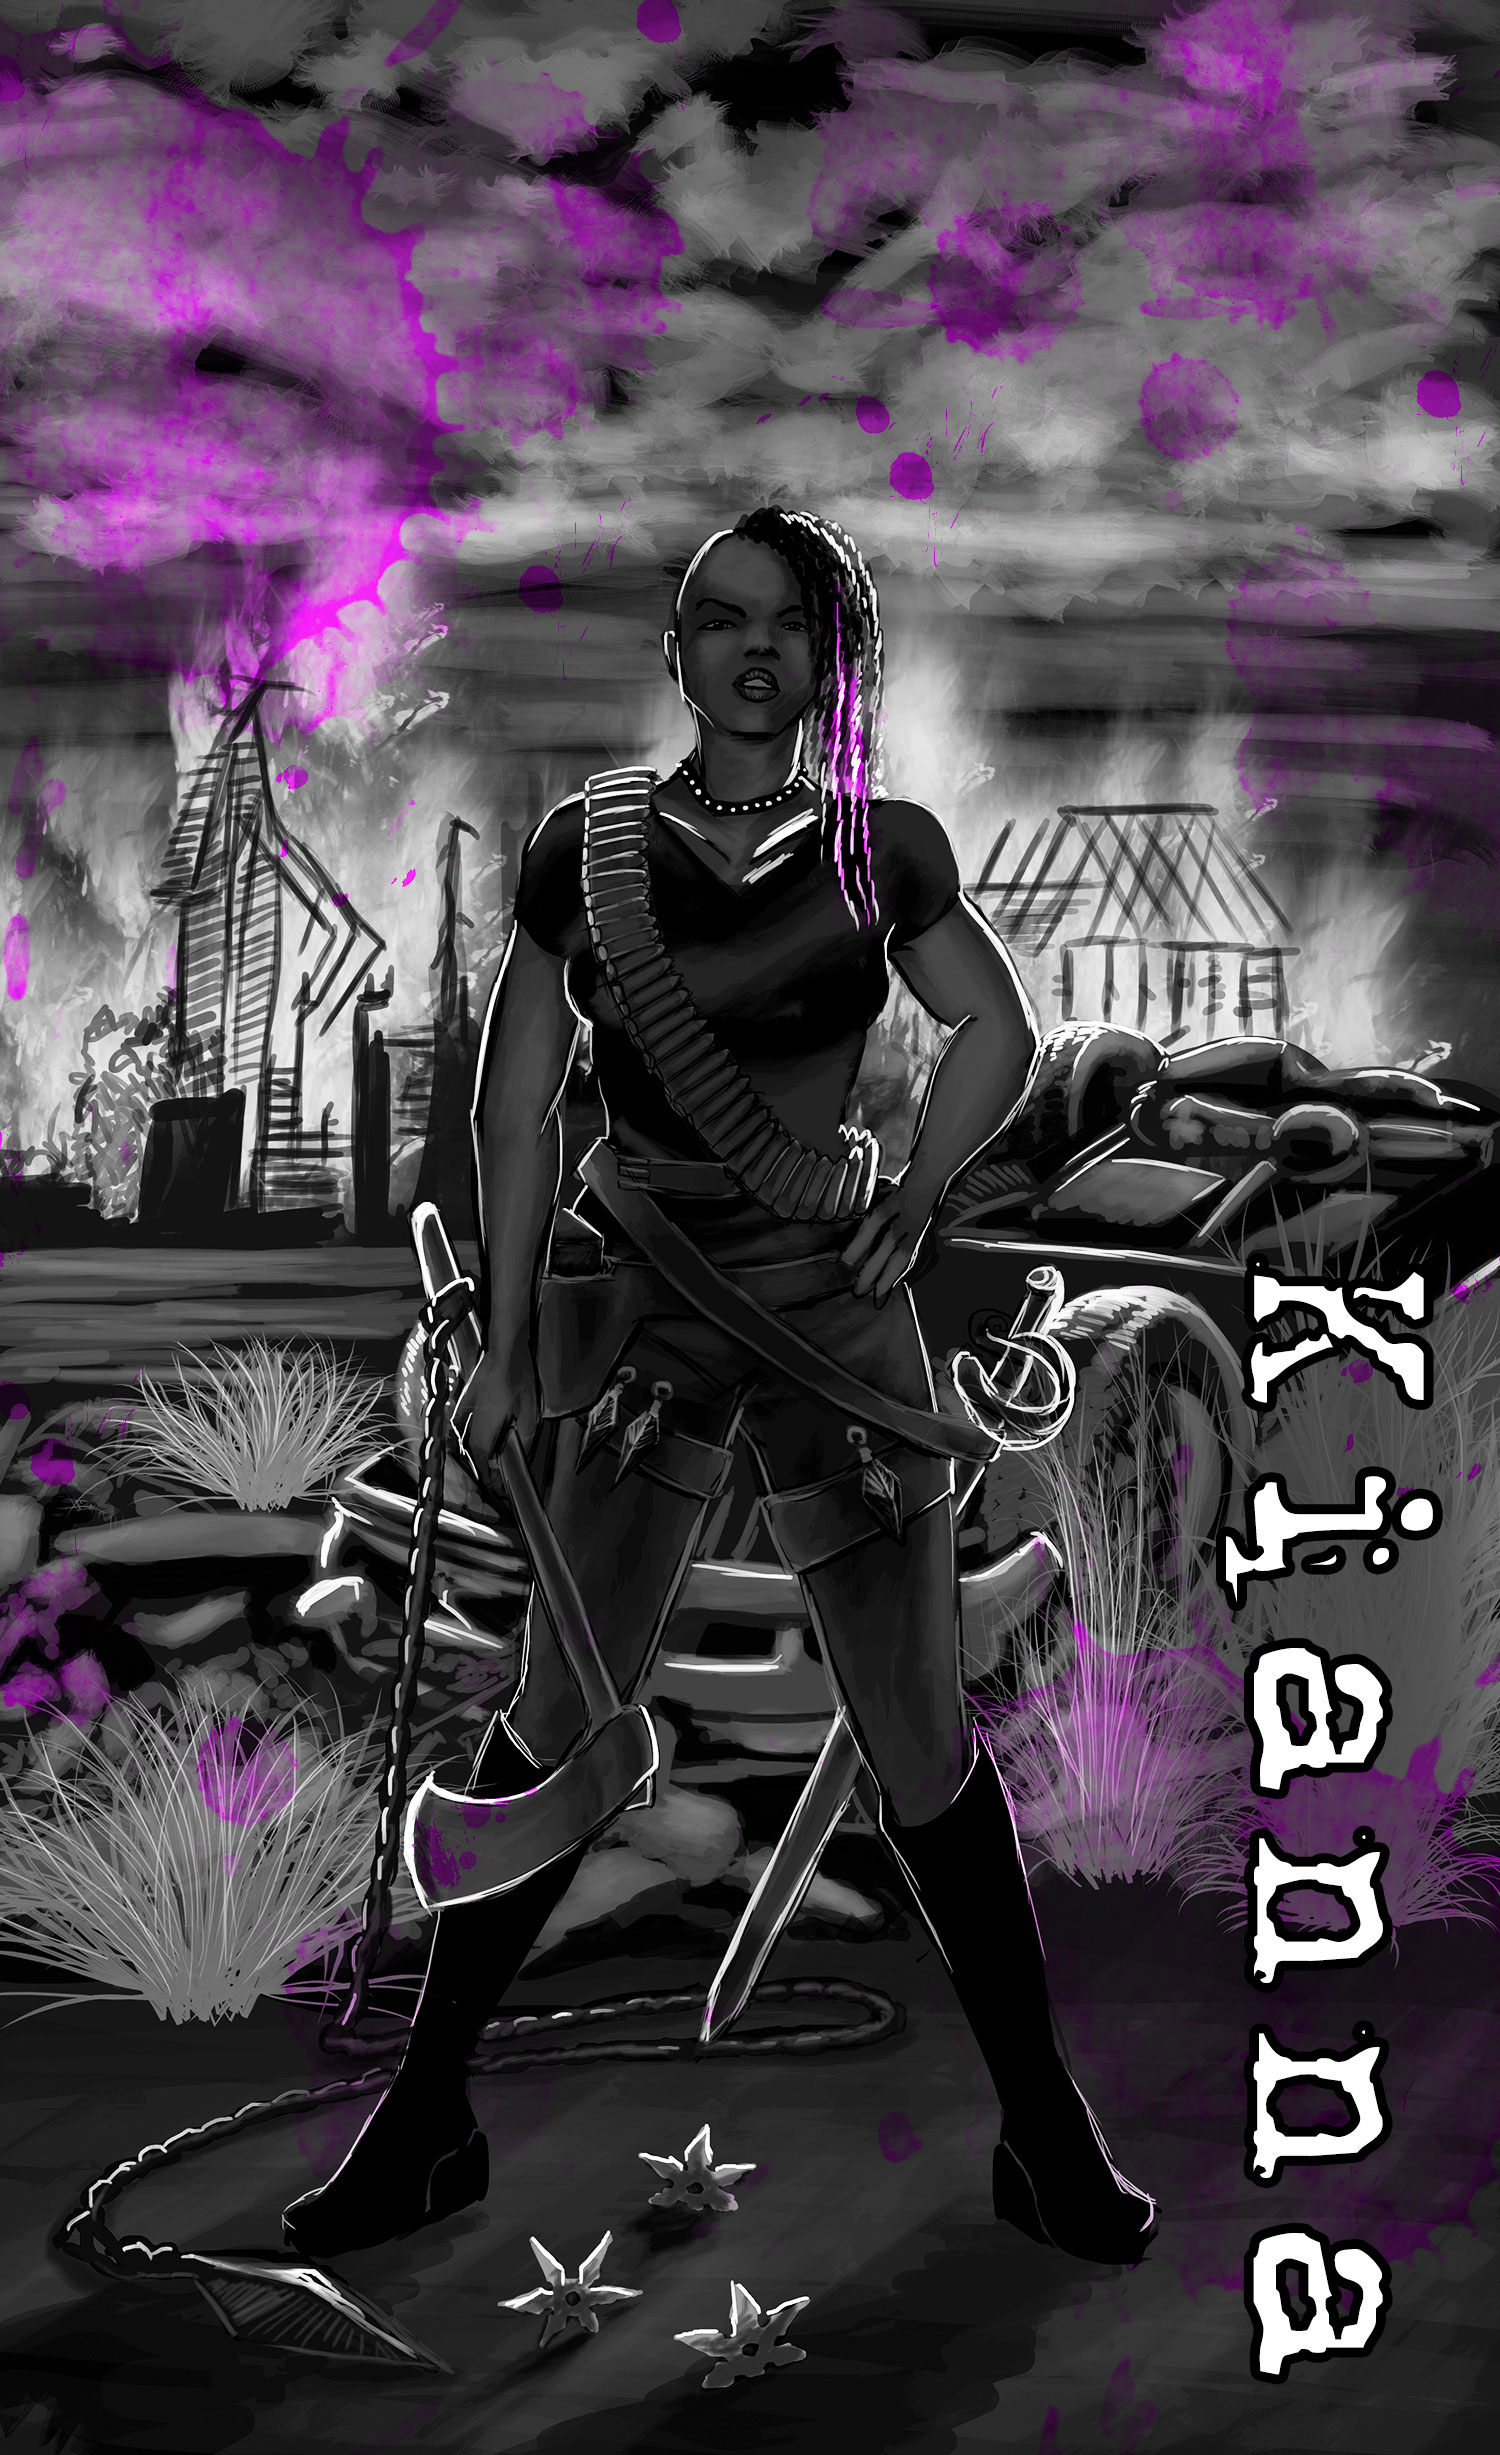 Kianna - Kianna is a force of nature unto herself. Refusing to wield any Sphere, she has instead trained herself in martial arts and weaponry. Those who haven't seen her fight would question how she'd survived so long; those who have seen her in battle have zero doubt. Not that anyone doubting her would say it to her face. Her wit is as sharp as her blade, and her tongue as focused as the aim of her pistol. The only person she puts up with is Aidan, and even that is questionable at times.